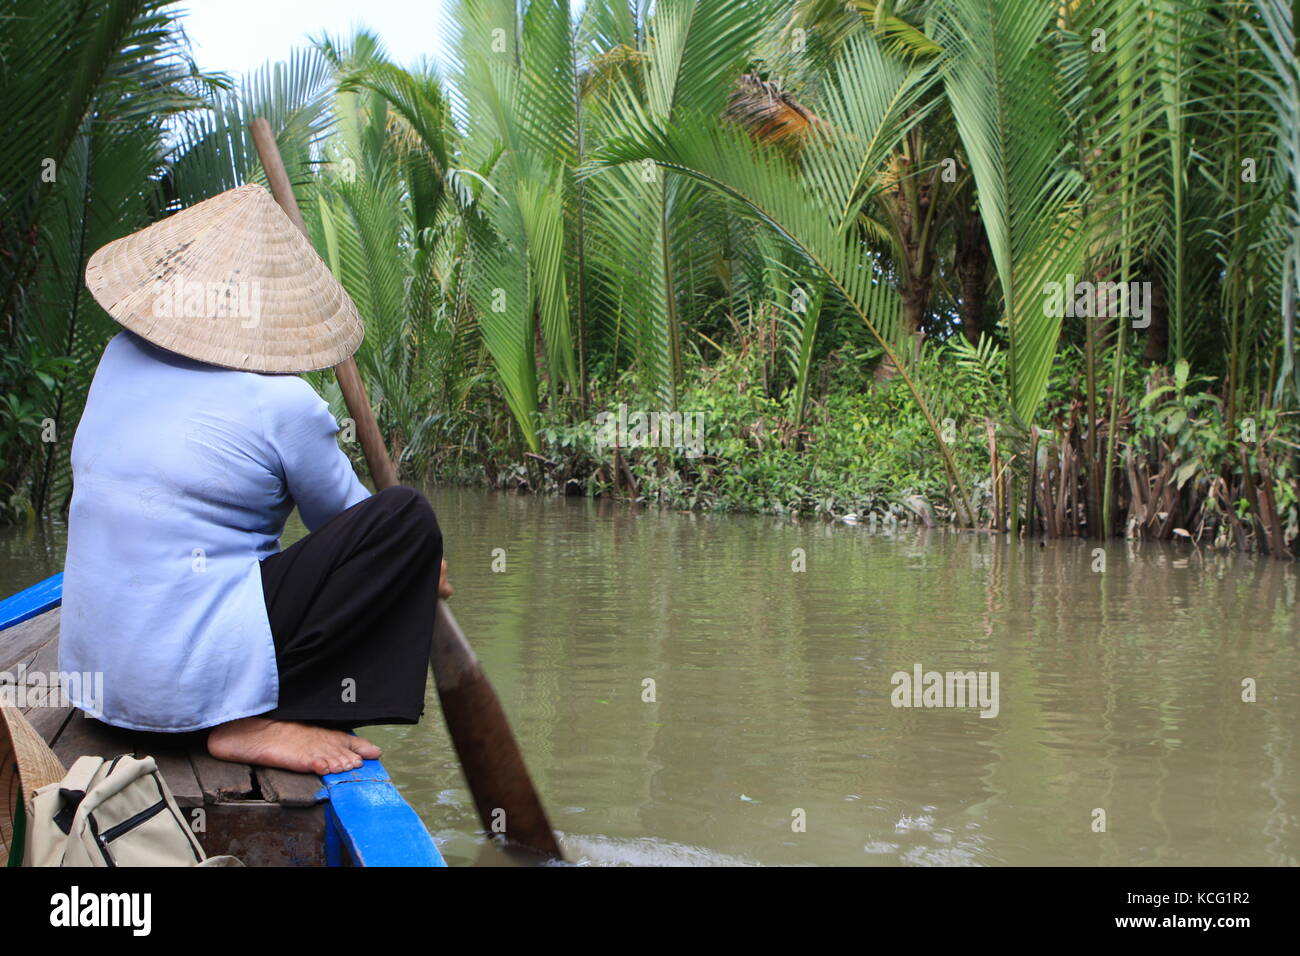 Frau auf Boot beim Rudern in Vietnam - Woman on boat while rowing in Vietnam - Stock Image